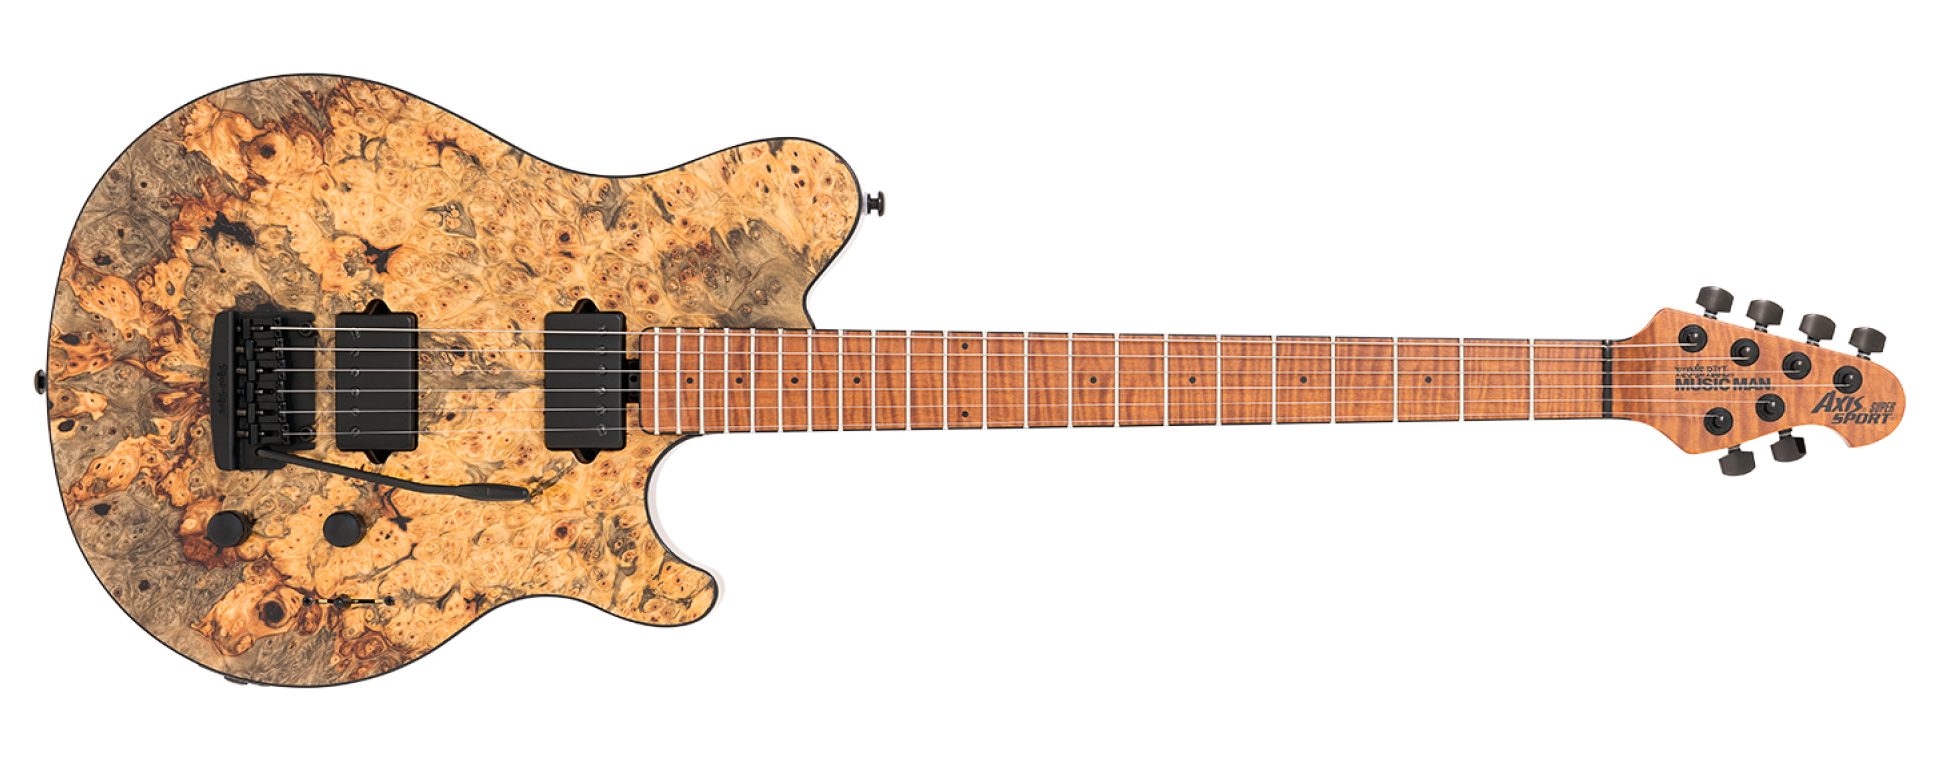 Ernie Ball Music Man Axis Super Sport Buckeye Burl